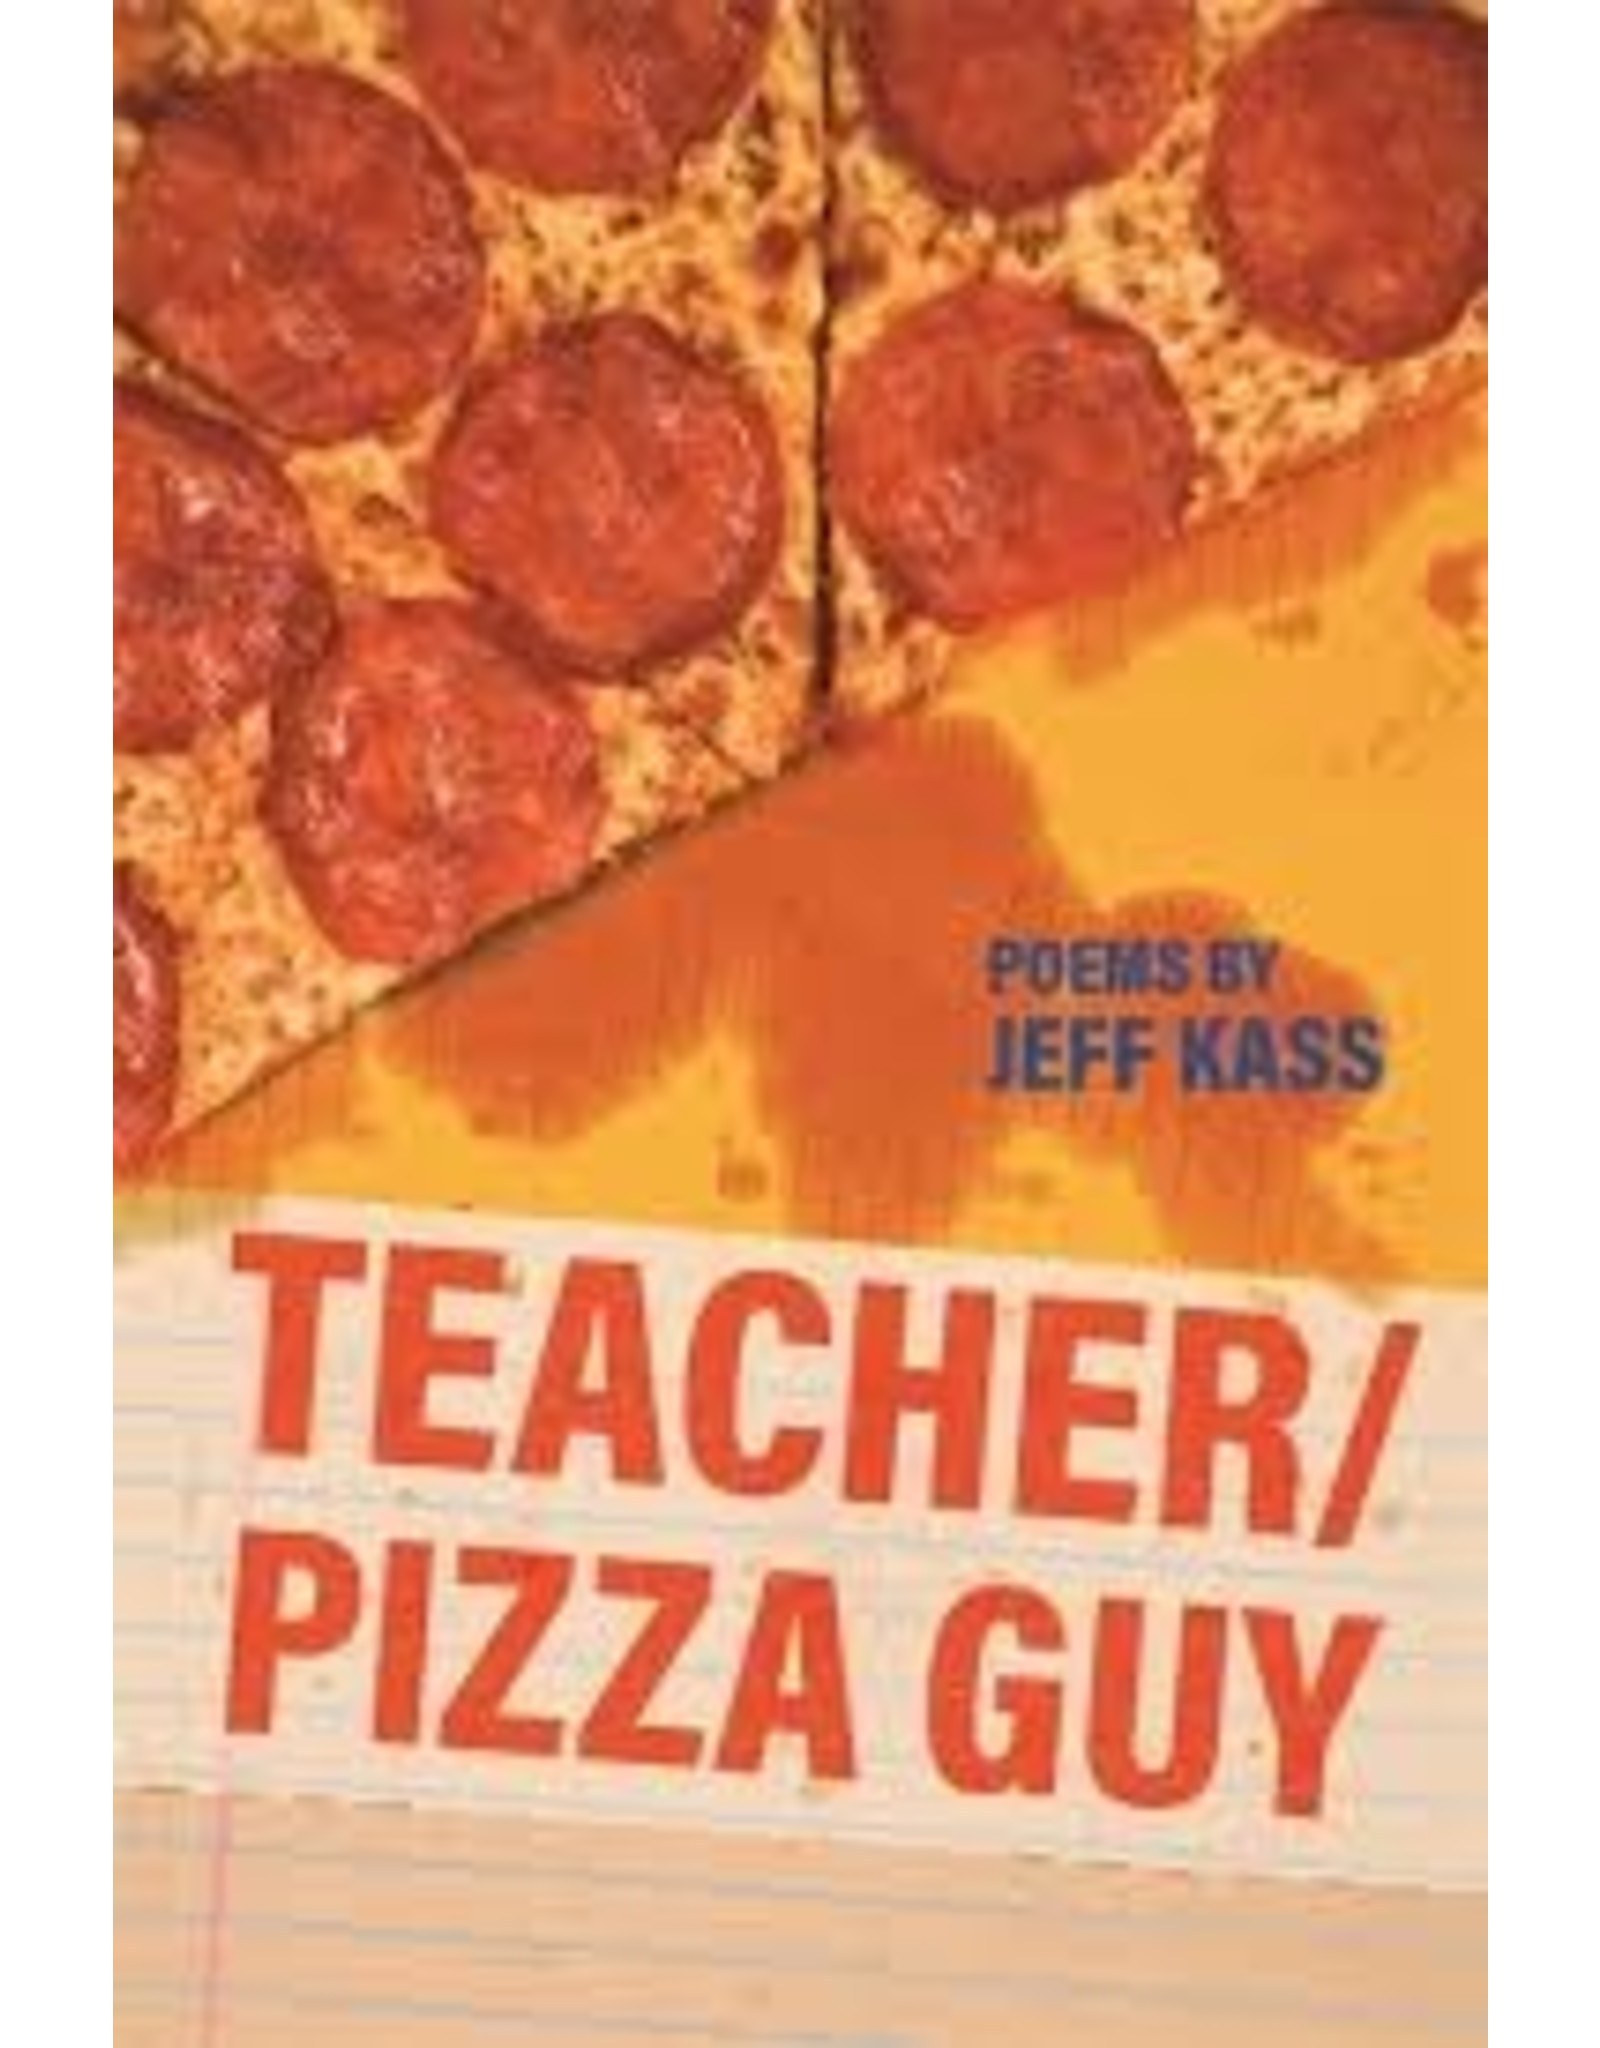 Books Teacher/Pizza Guy Poems by Jeff Kass